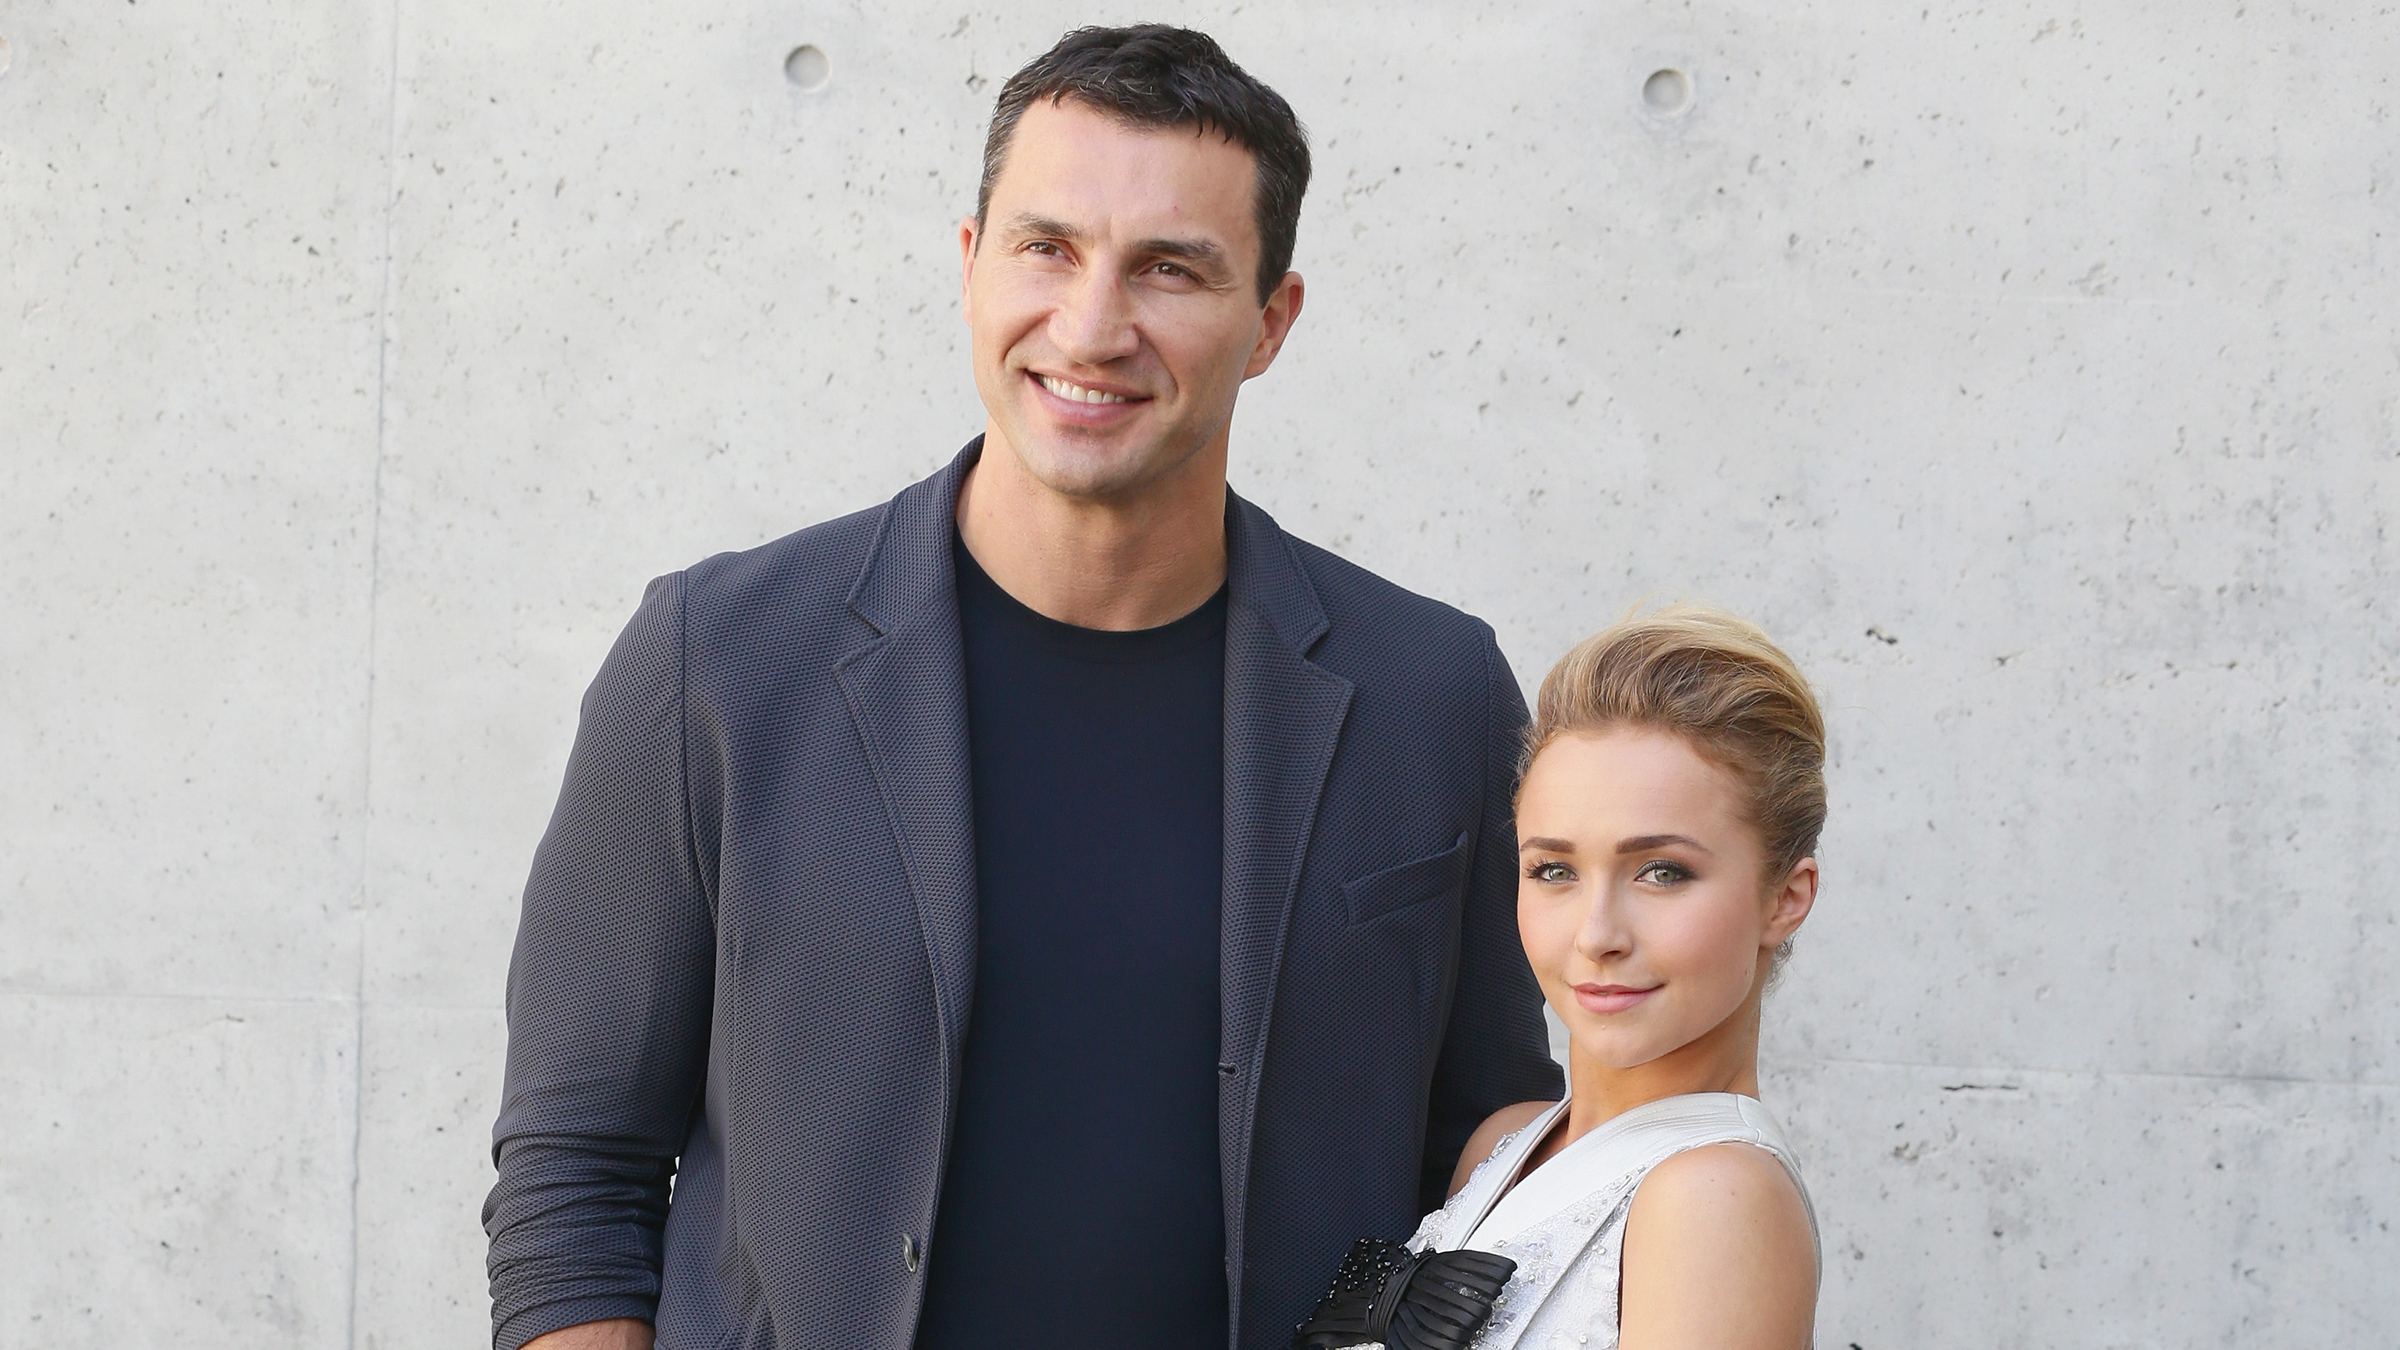 Hayden Panettiere and Wladimir Klitschko attend the Giorgio Armani show during Milan Menswear Fashion Week Spring Summer 2014 on June 25, 2013 in Milan, Italy. (Photo by Vittorio Zunino Celotto/Getty Images)